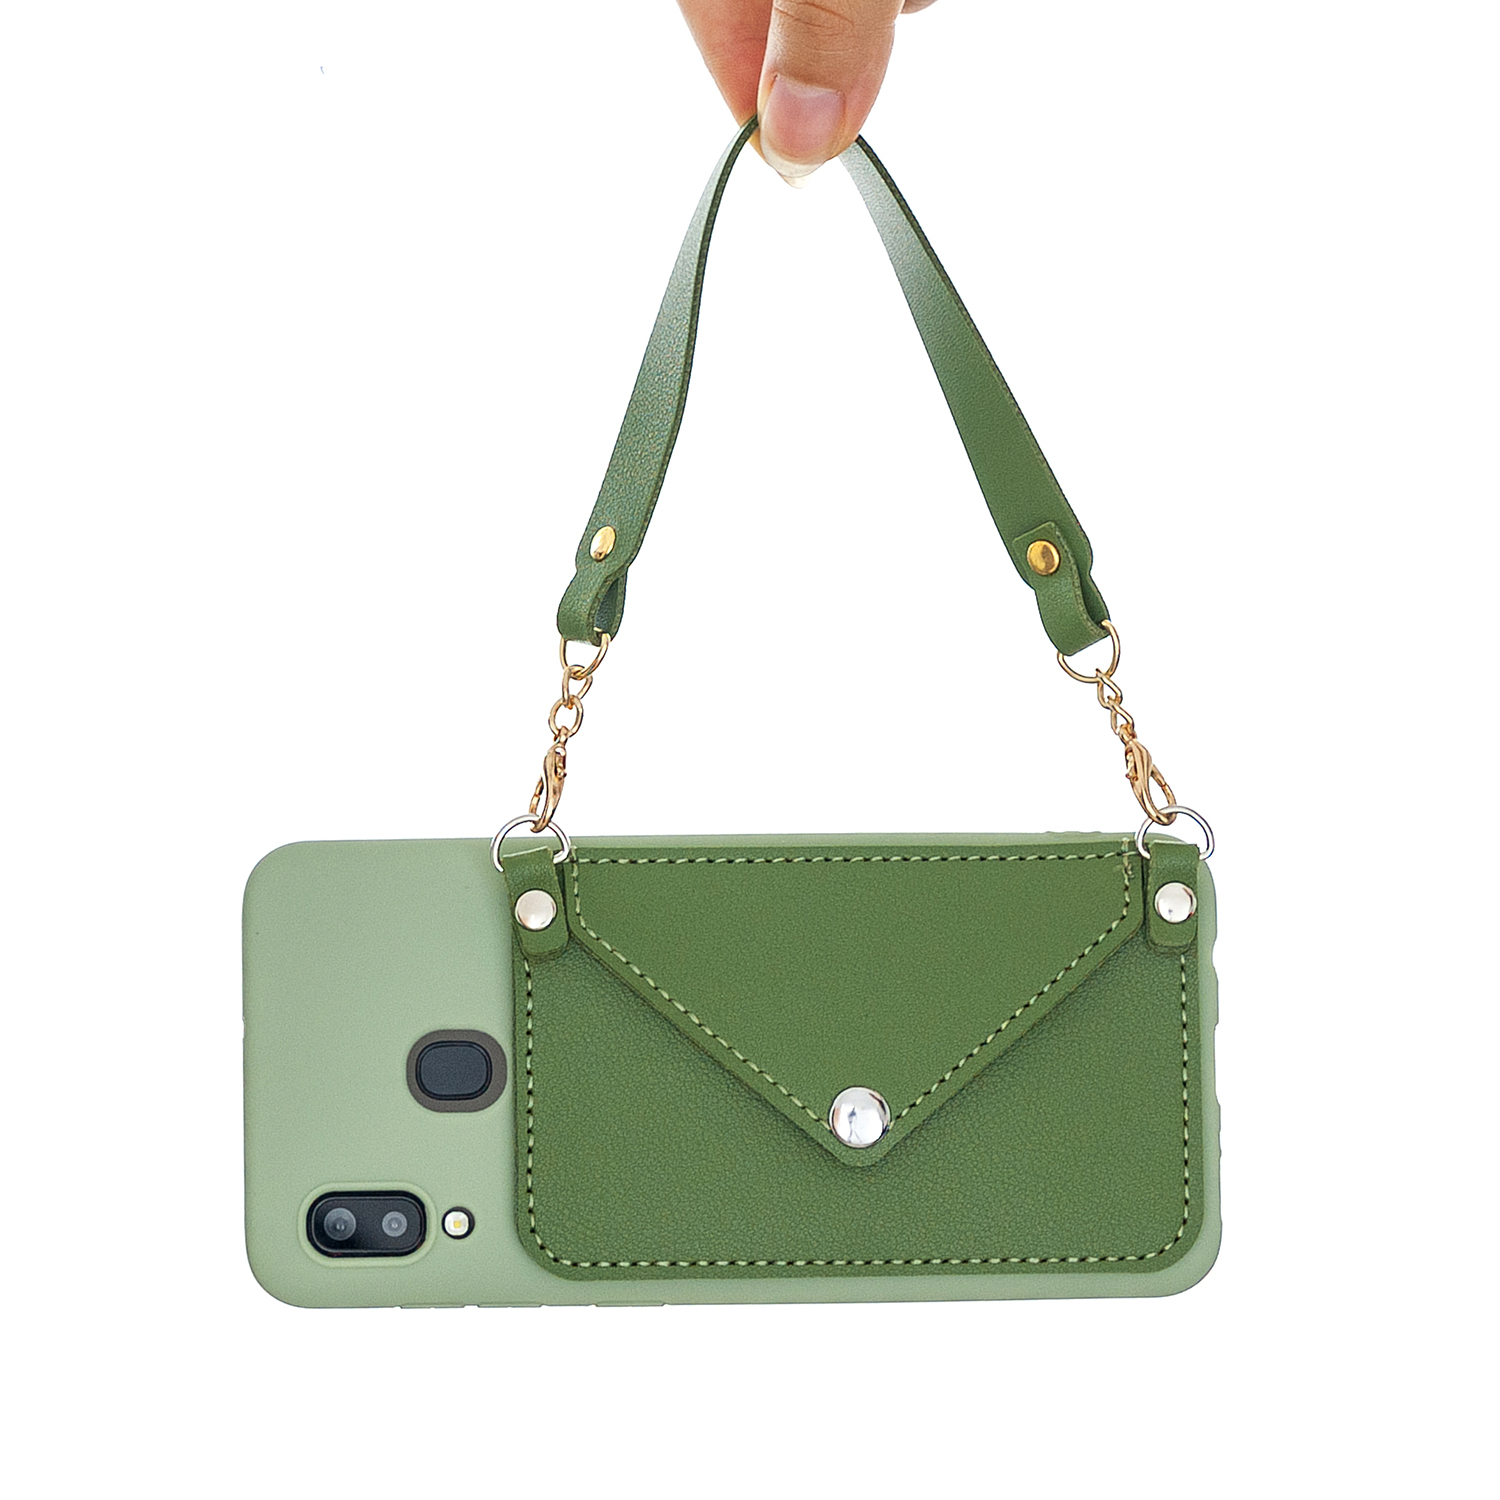 For HUAWEI Y5 2018/2019/Y6 2019/Y7 2019/PSMART Z/Y9 2019 Mobile Phone Cover with Pu Card Holder + Hand Rope + Straddle Rope green